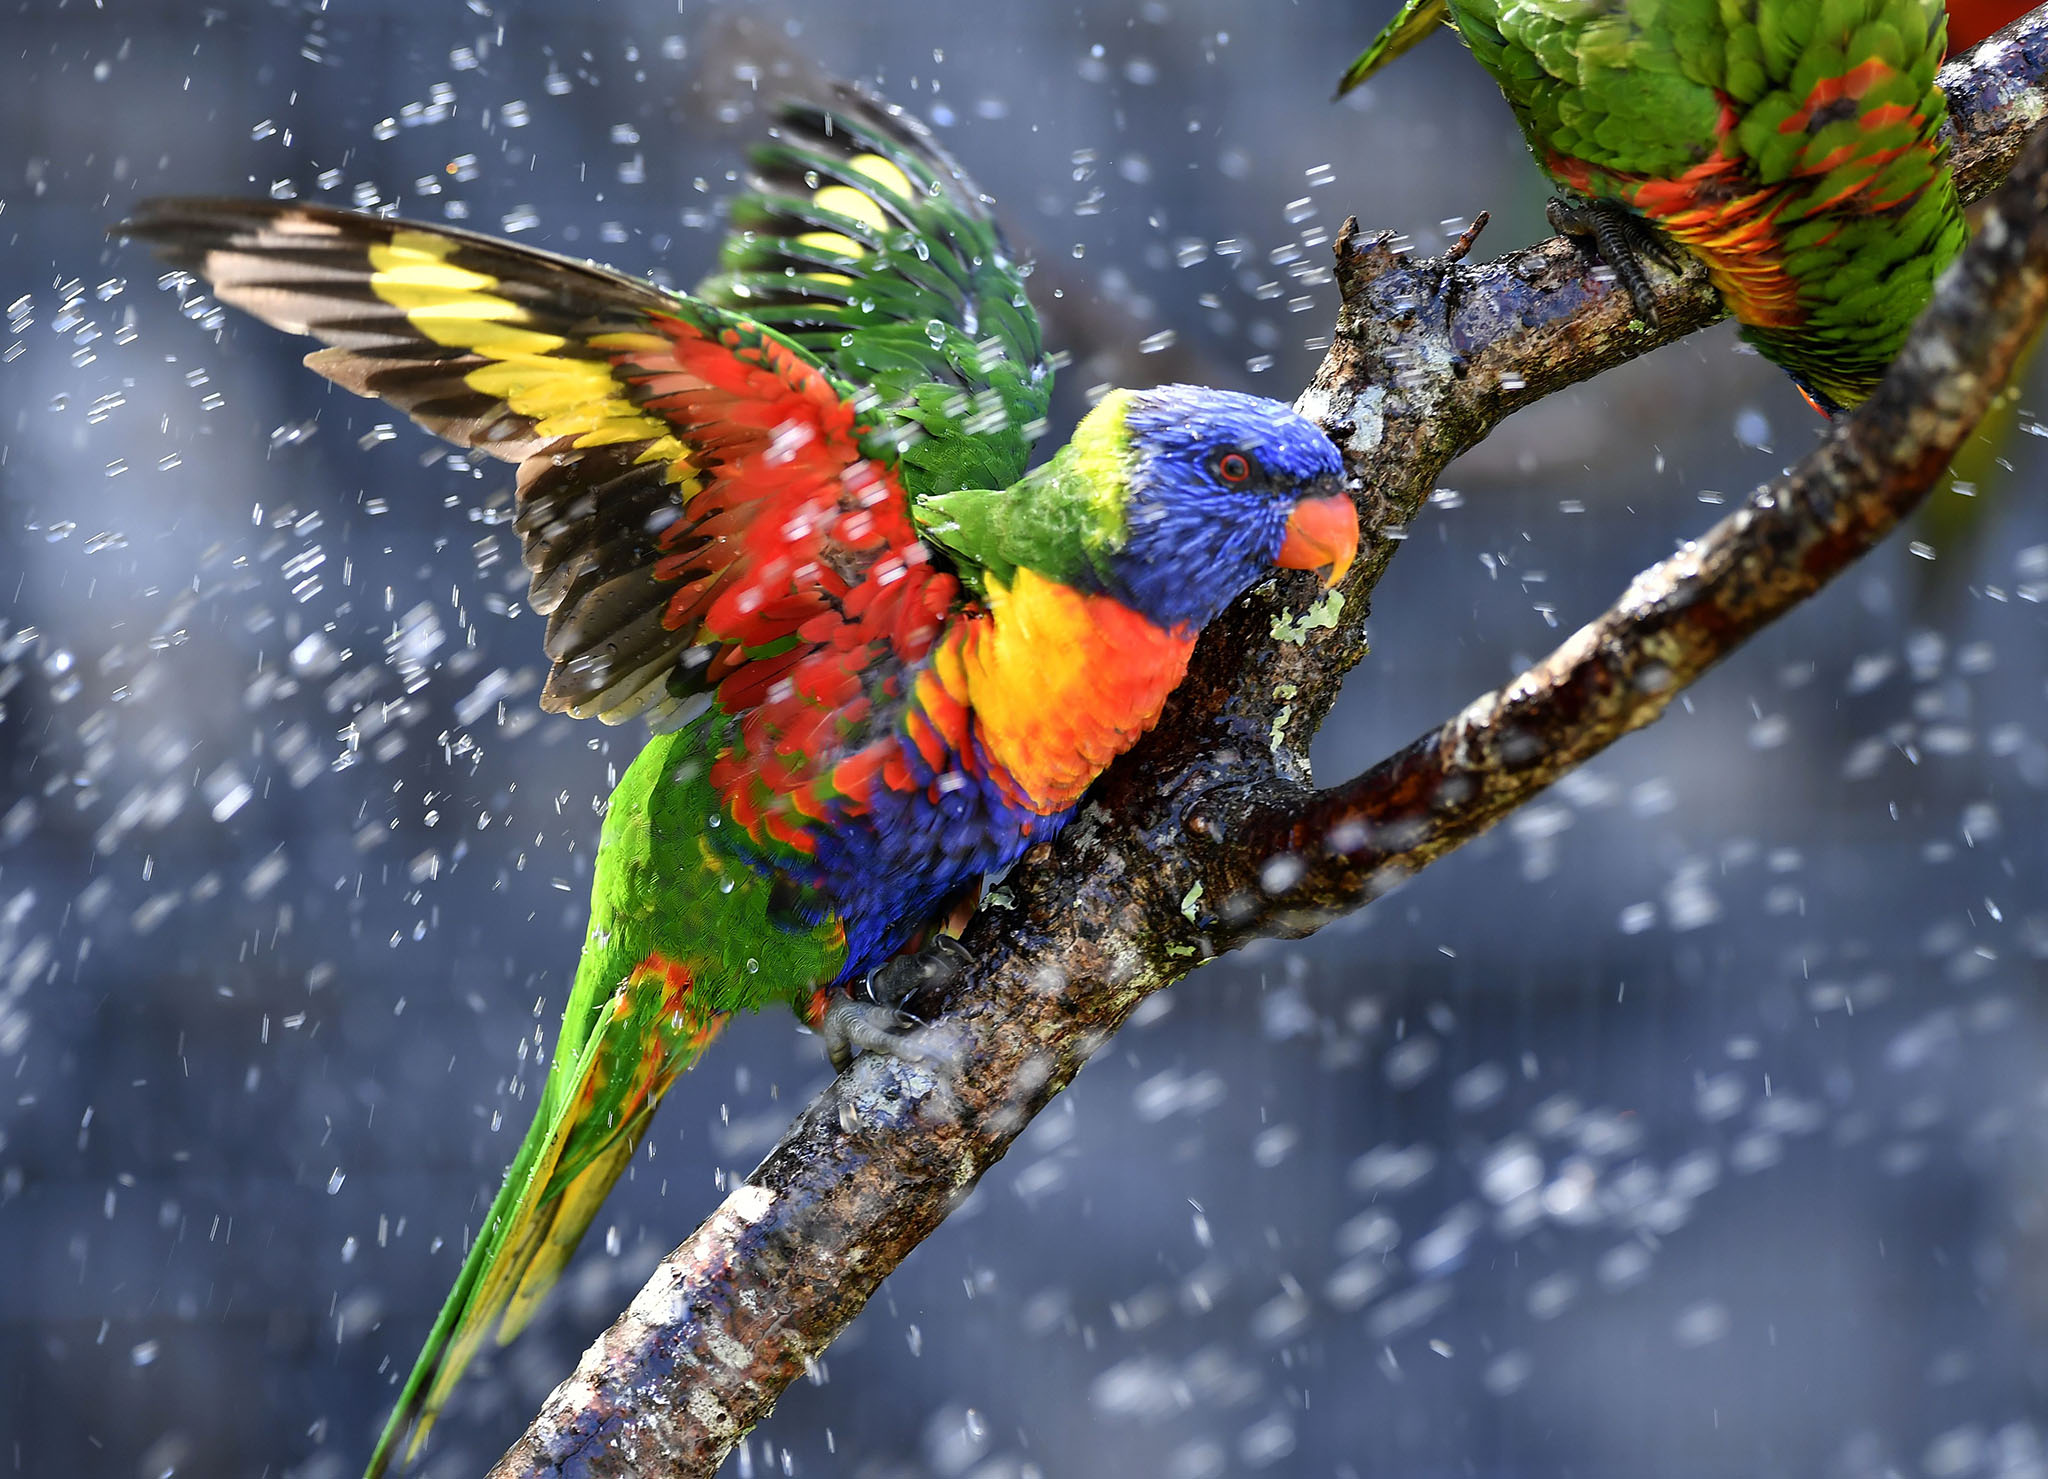 Australian rainbow lorikeets (parrots), cool off in a sprinkler on August 25, 2016, at the zoo of Pessac near Bordeaux, as temperatures soar across the countr